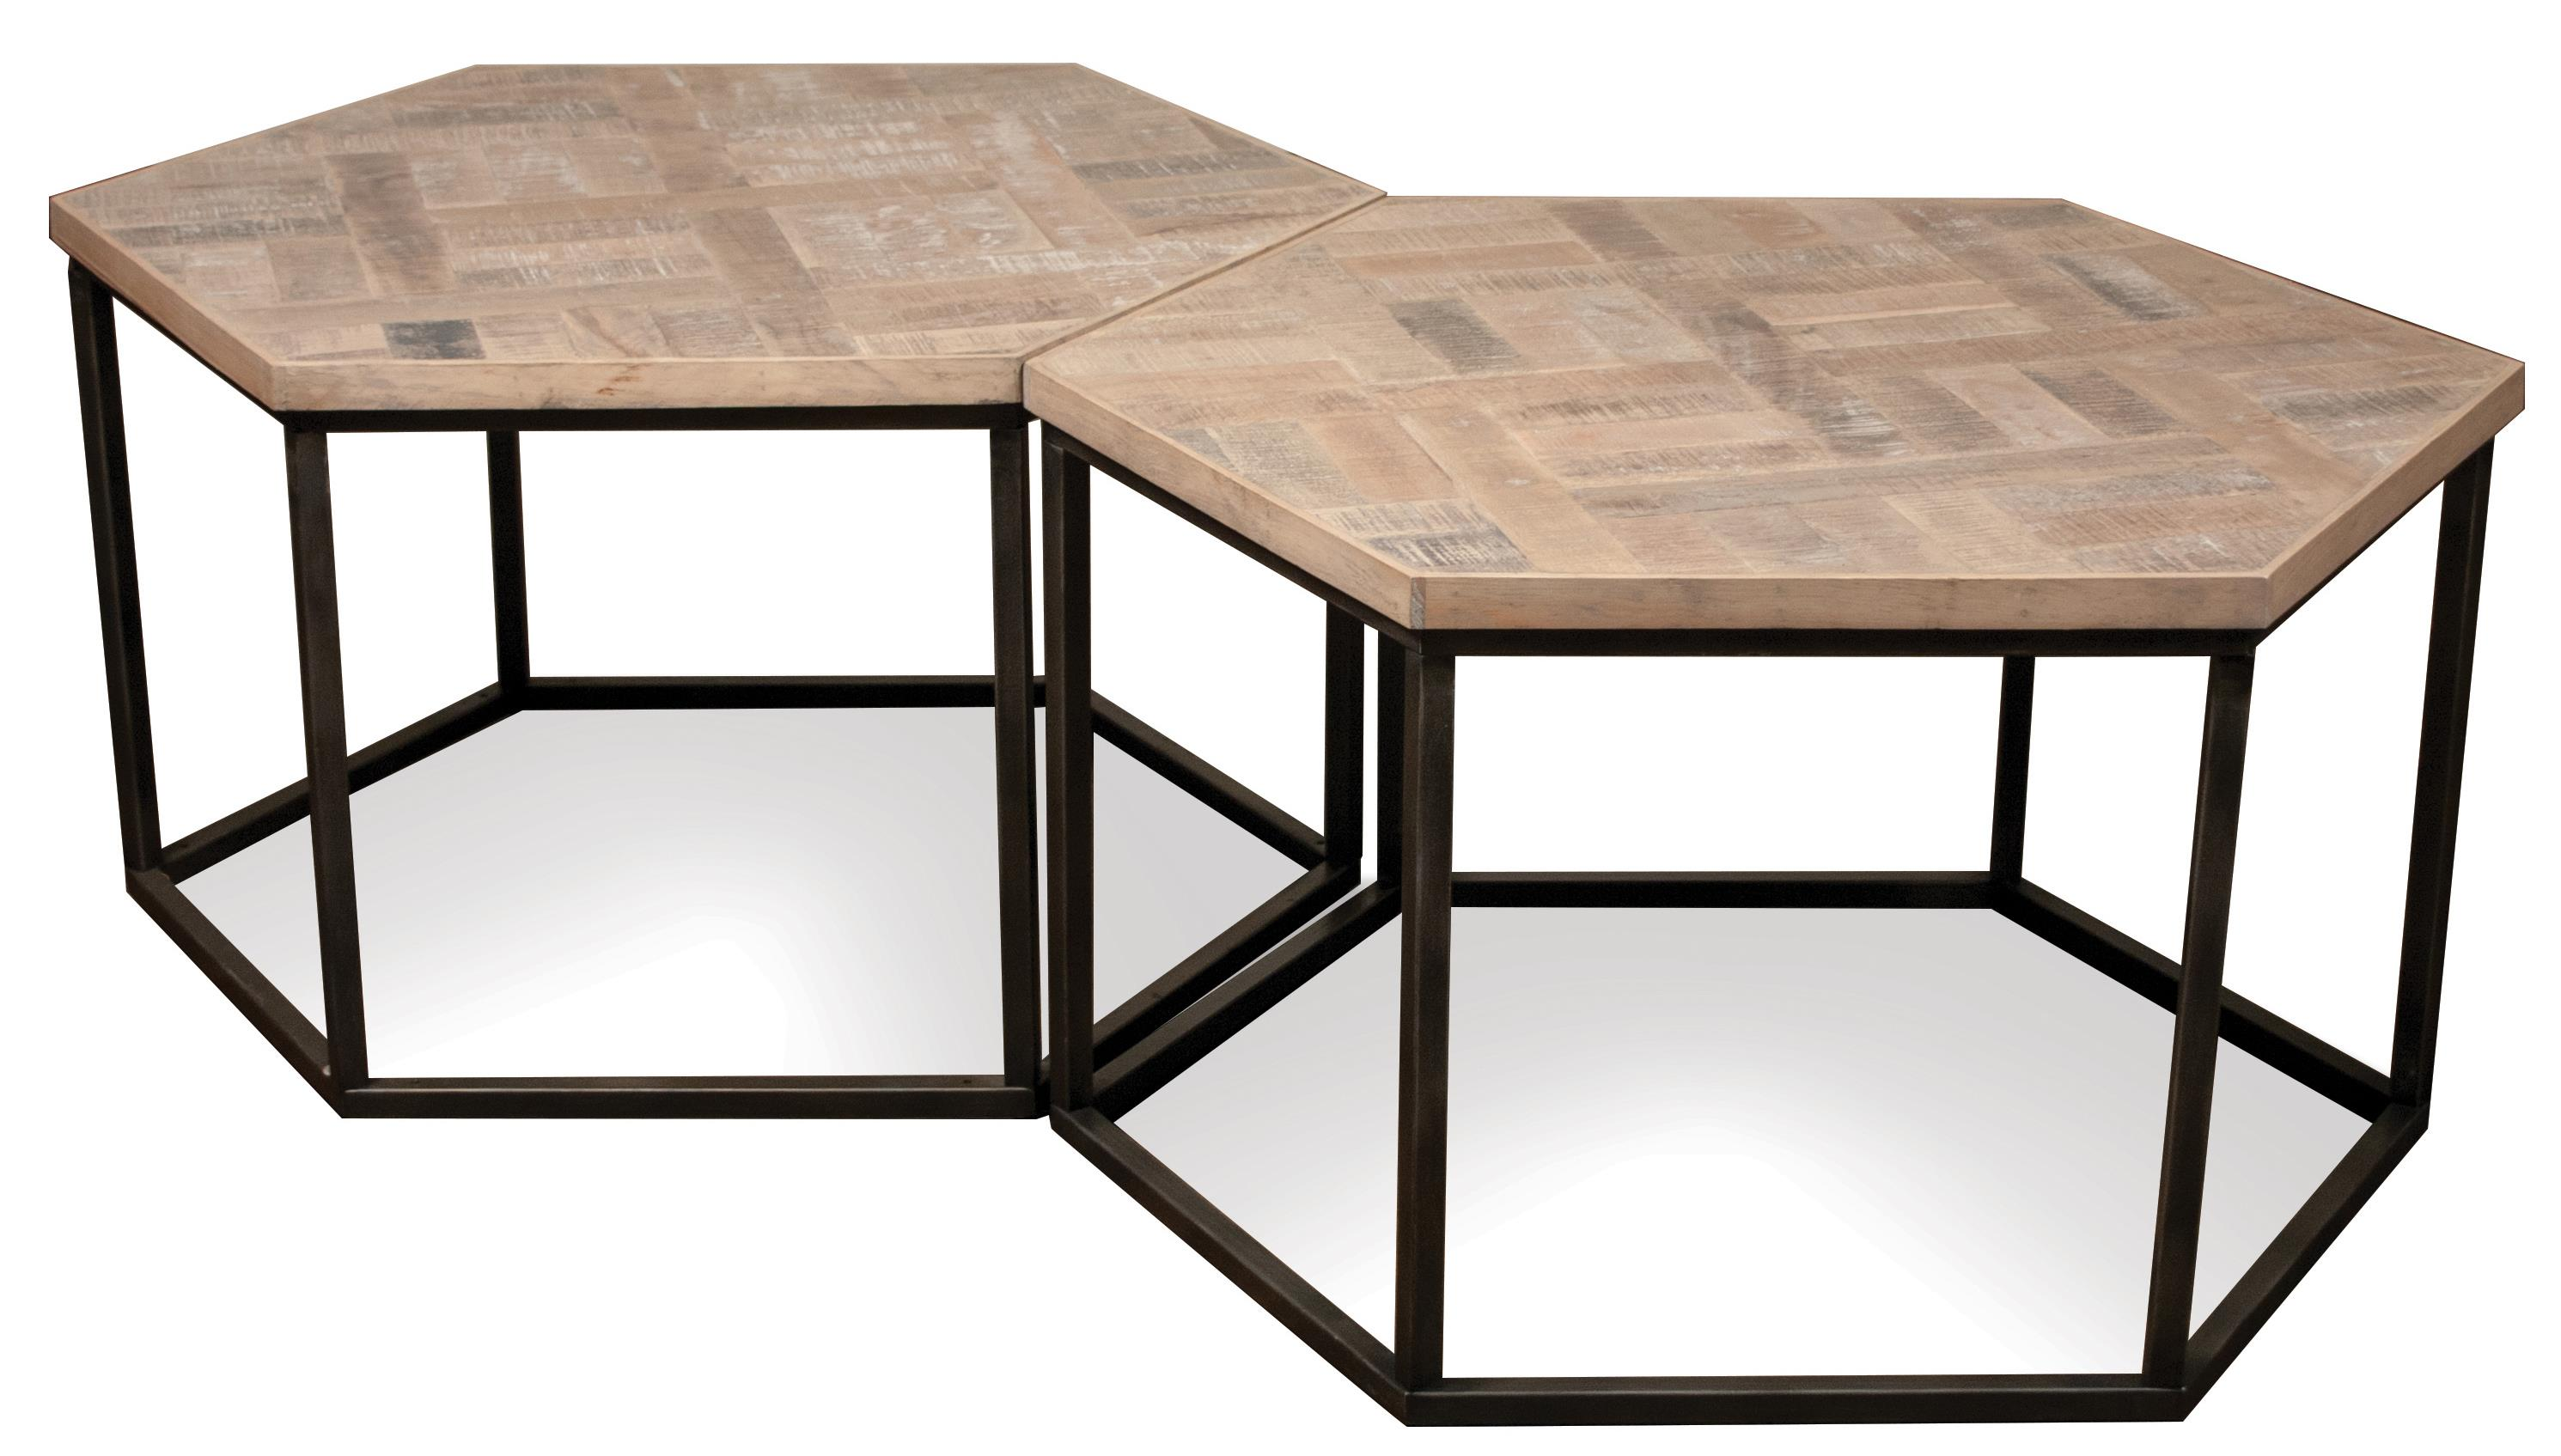 Riverside Furniture Thornhill 18301 Hexagon Coffee Table W Metal Base Dunk Bright Furniture